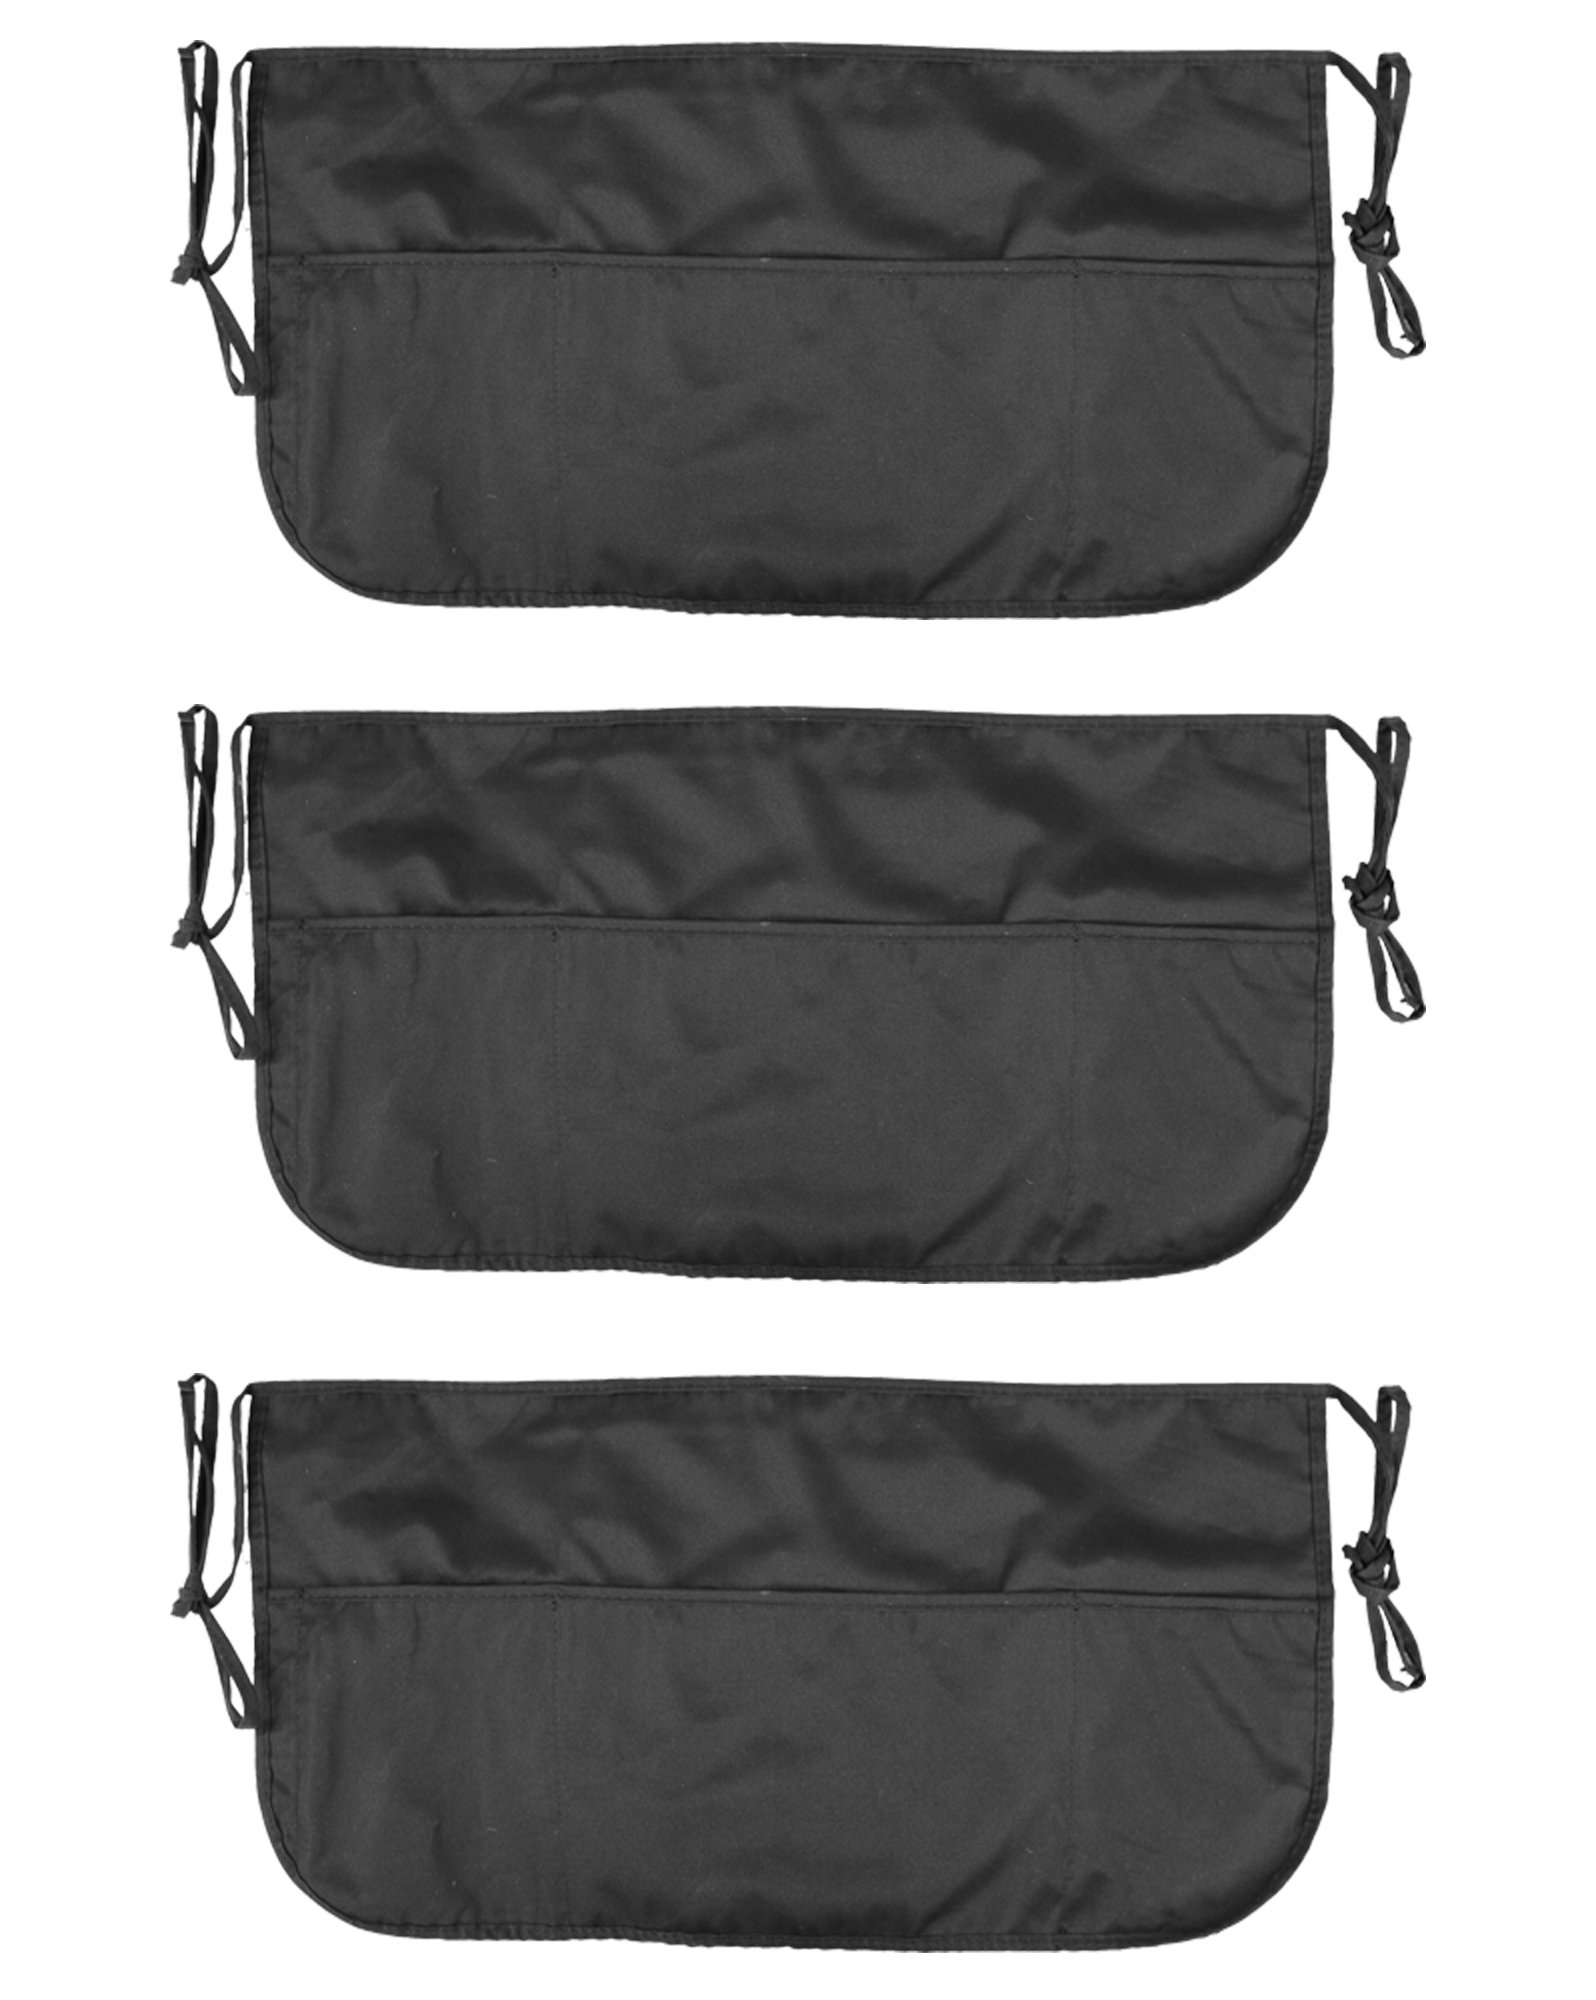 Double sided 3 Pocket Waist Apron with Pen Holder | Waterproof Apron for Severs, Bartenders, Cooking, Crafts - Mato & Hash - 3PK Black by Mato & Hash